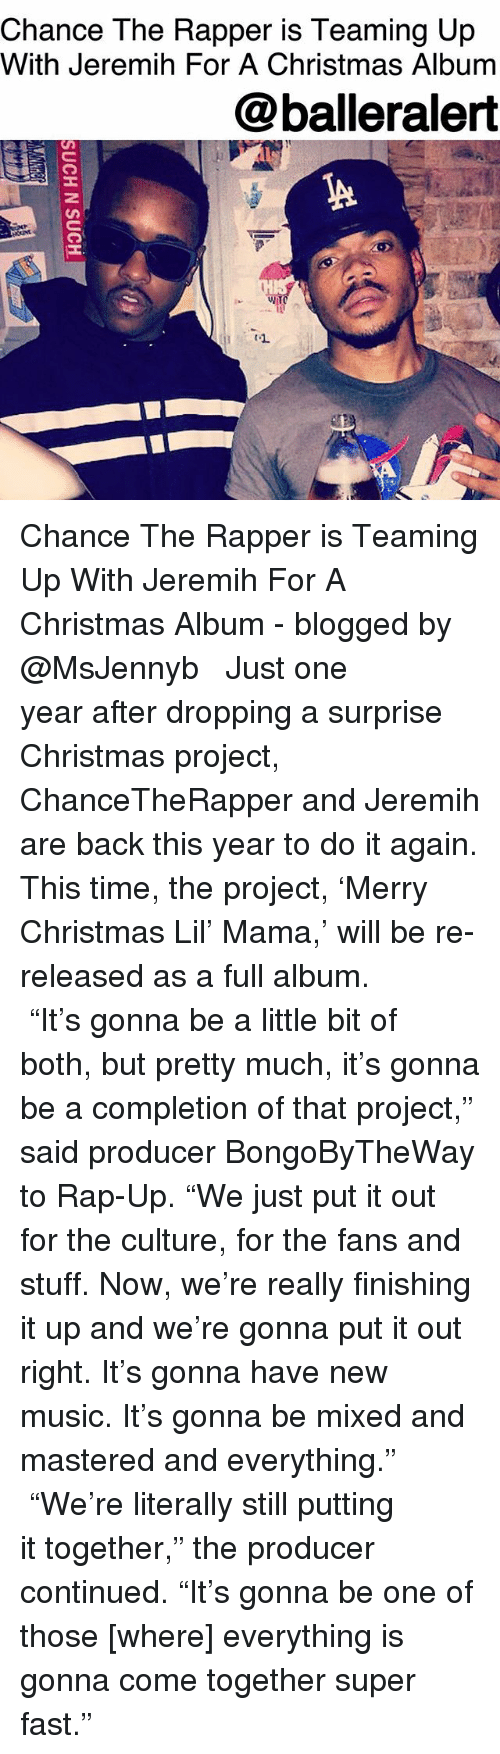 """Chance the Rapper, Christmas, and Do It Again: Chance The Rapper is Teaming Up  With Jeremih For A Christmas Album  @balleralert Chance The Rapper is Teaming Up With Jeremih For A Christmas Album - blogged by @MsJennyb ⠀⠀⠀⠀⠀⠀⠀ ⠀⠀⠀⠀⠀⠀⠀ Just one year after dropping a surprise Christmas project, ChanceTheRapper and Jeremih are back this year to do it again. This time, the project, 'Merry Christmas Lil' Mama,' will be re-released as a full album. ⠀⠀⠀⠀⠀⠀⠀ ⠀⠀⠀⠀⠀⠀⠀ """"It's gonna be a little bit of both, but pretty much, it's gonna be a completion of that project,"""" said producer BongoByTheWay to Rap-Up. """"We just put it out for the culture, for the fans and stuff. Now, we're really finishing it up and we're gonna put it out right. It's gonna have new music. It's gonna be mixed and mastered and everything."""" ⠀⠀⠀⠀⠀⠀⠀ ⠀⠀⠀⠀⠀⠀⠀ """"We're literally still putting it together,"""" the producer continued. """"It's gonna be one of those [where] everything is gonna come together super fast."""""""